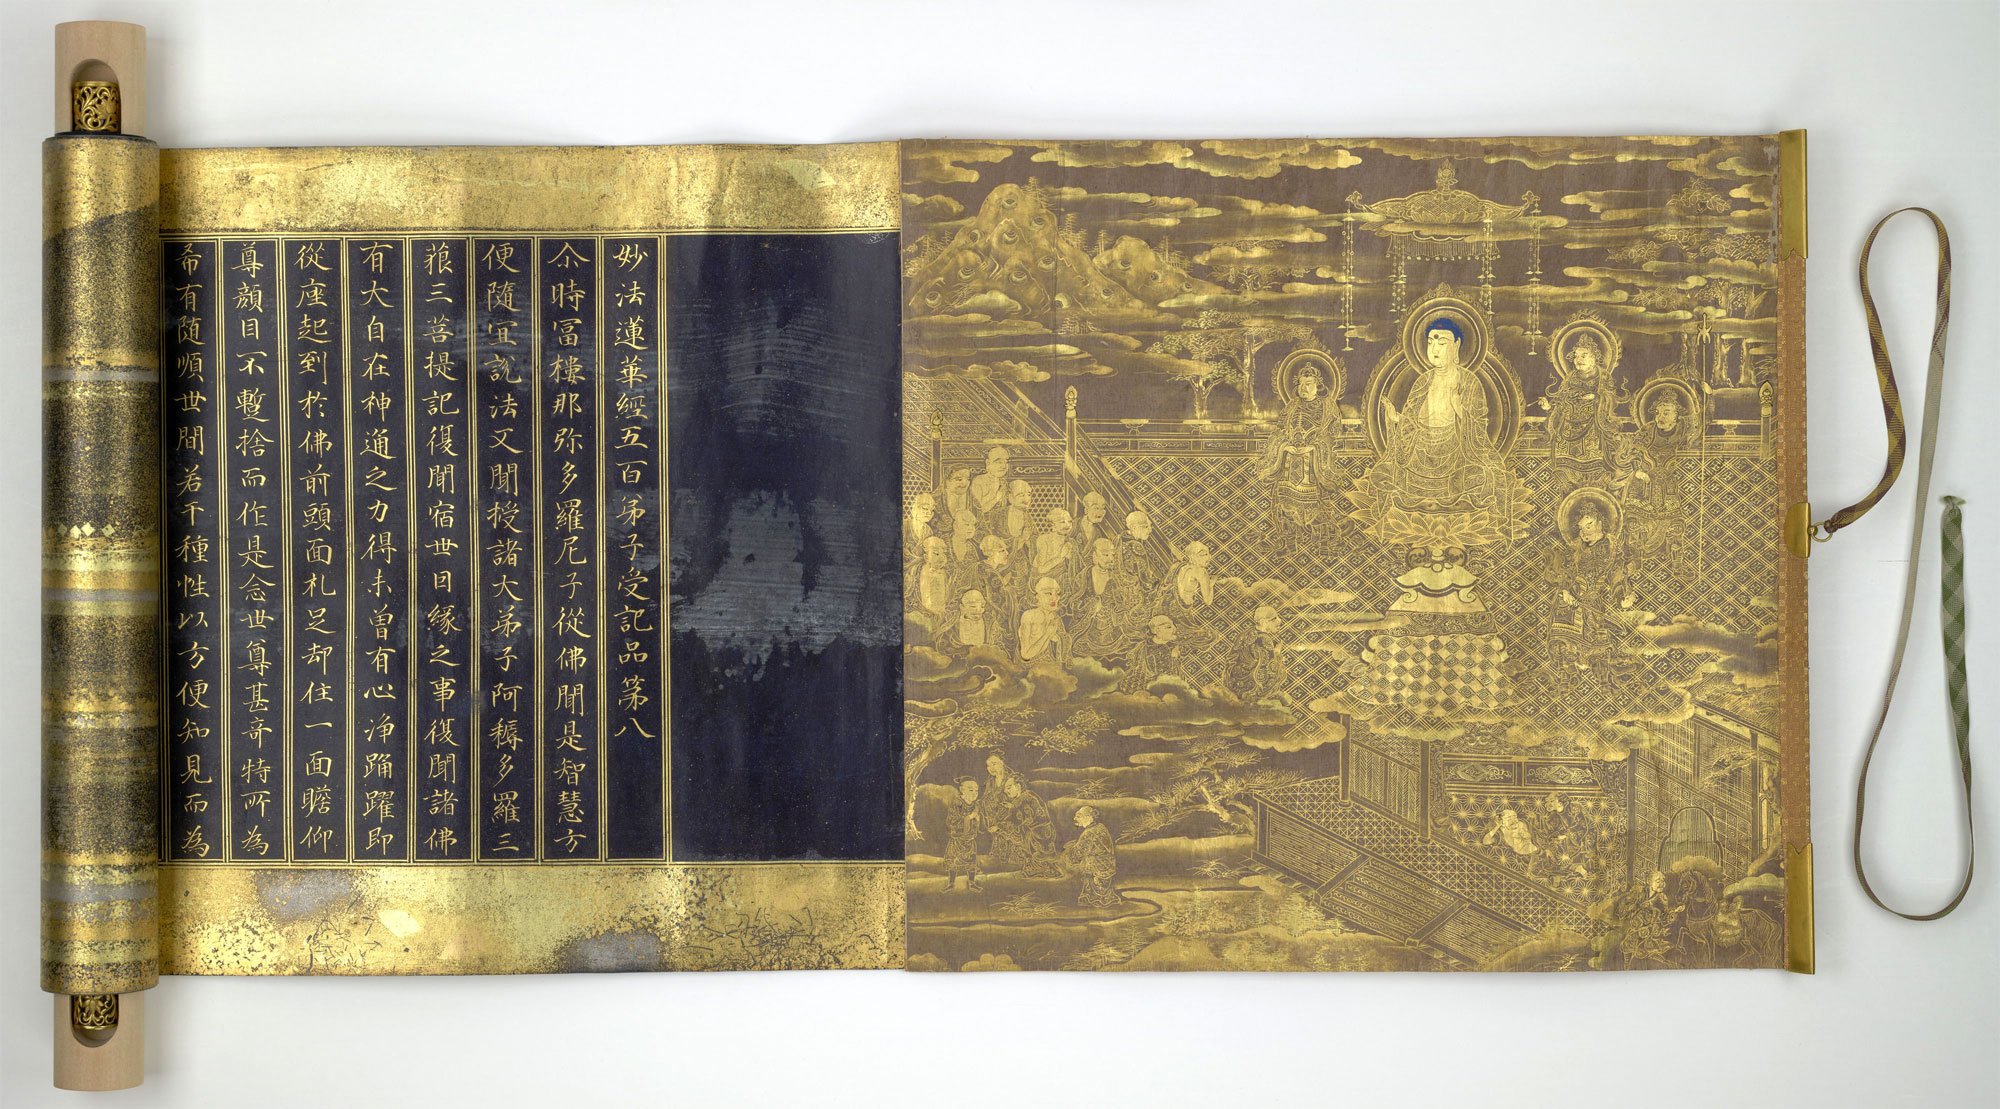 Start of the Eighth chapter of the 'Lotus Sutra'